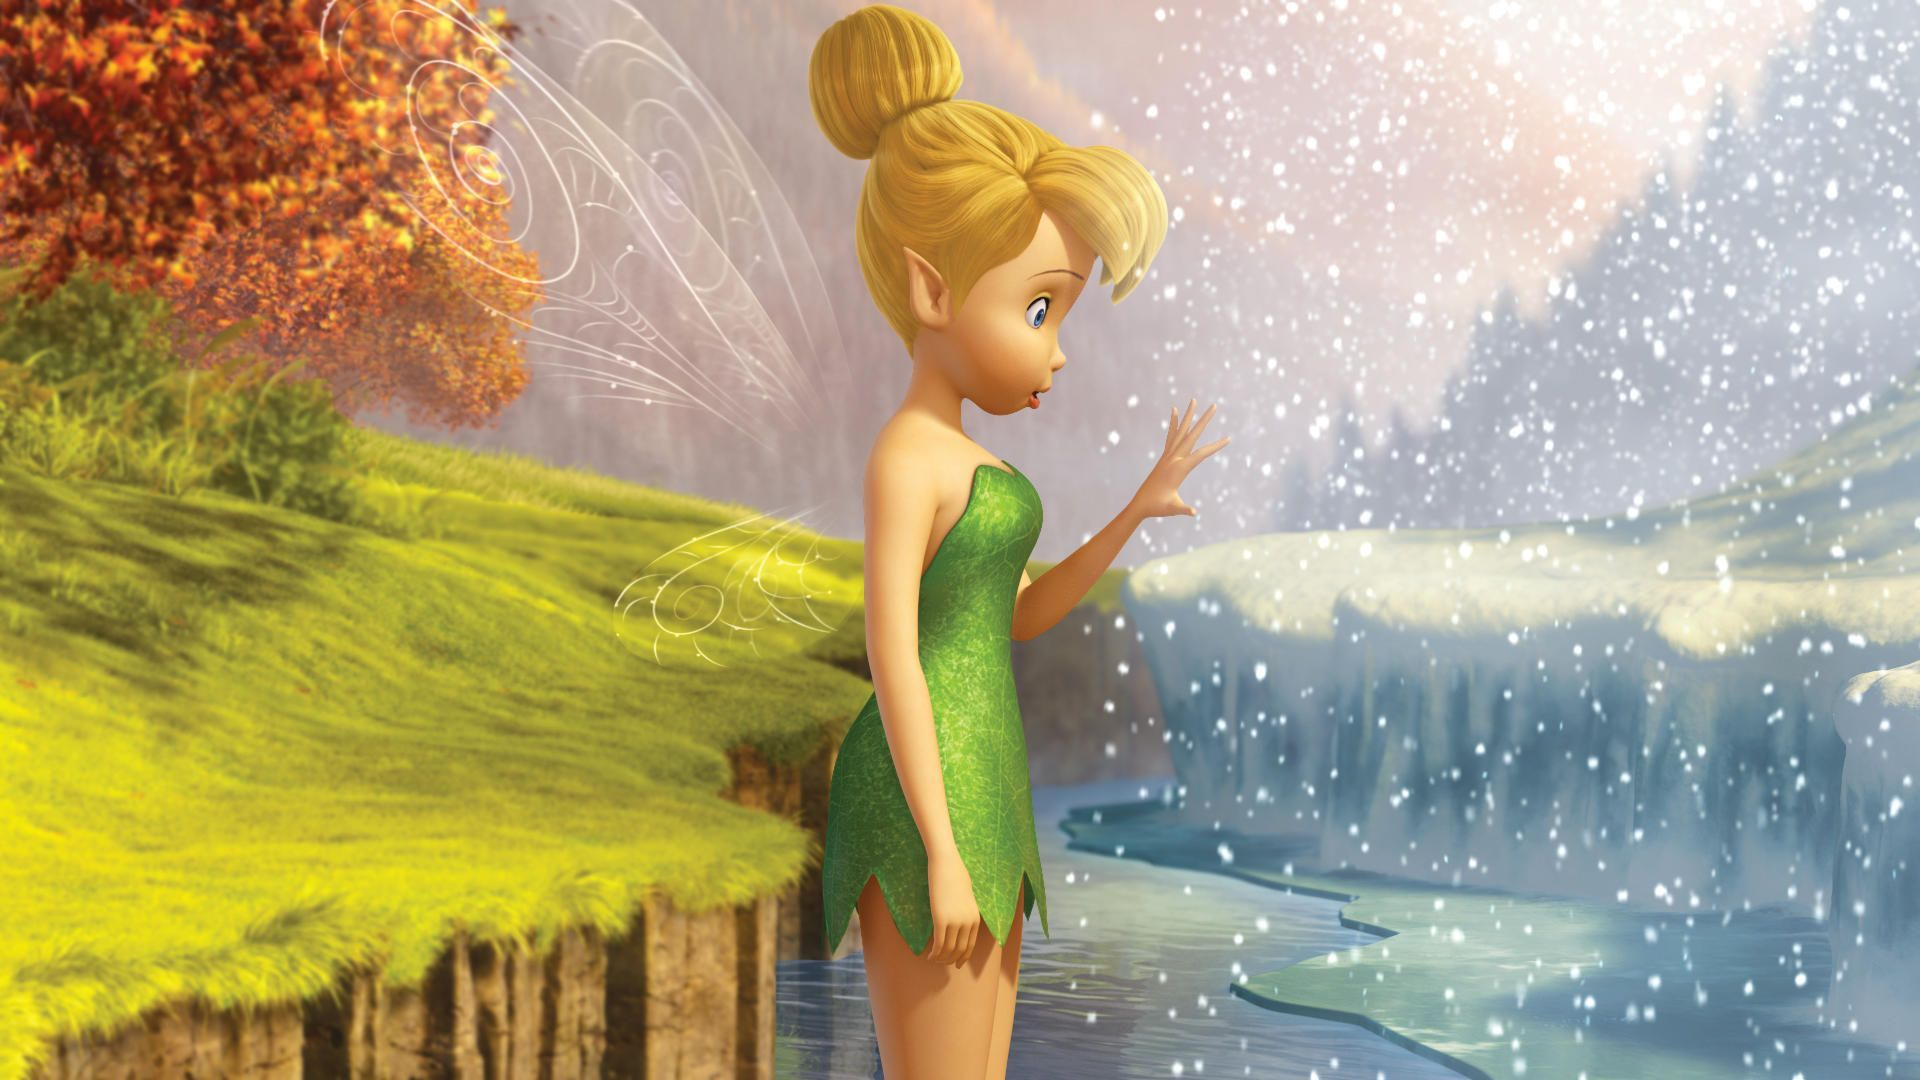 Tinker Bell Wallpapers Top Free Tinker Bell Backgrounds